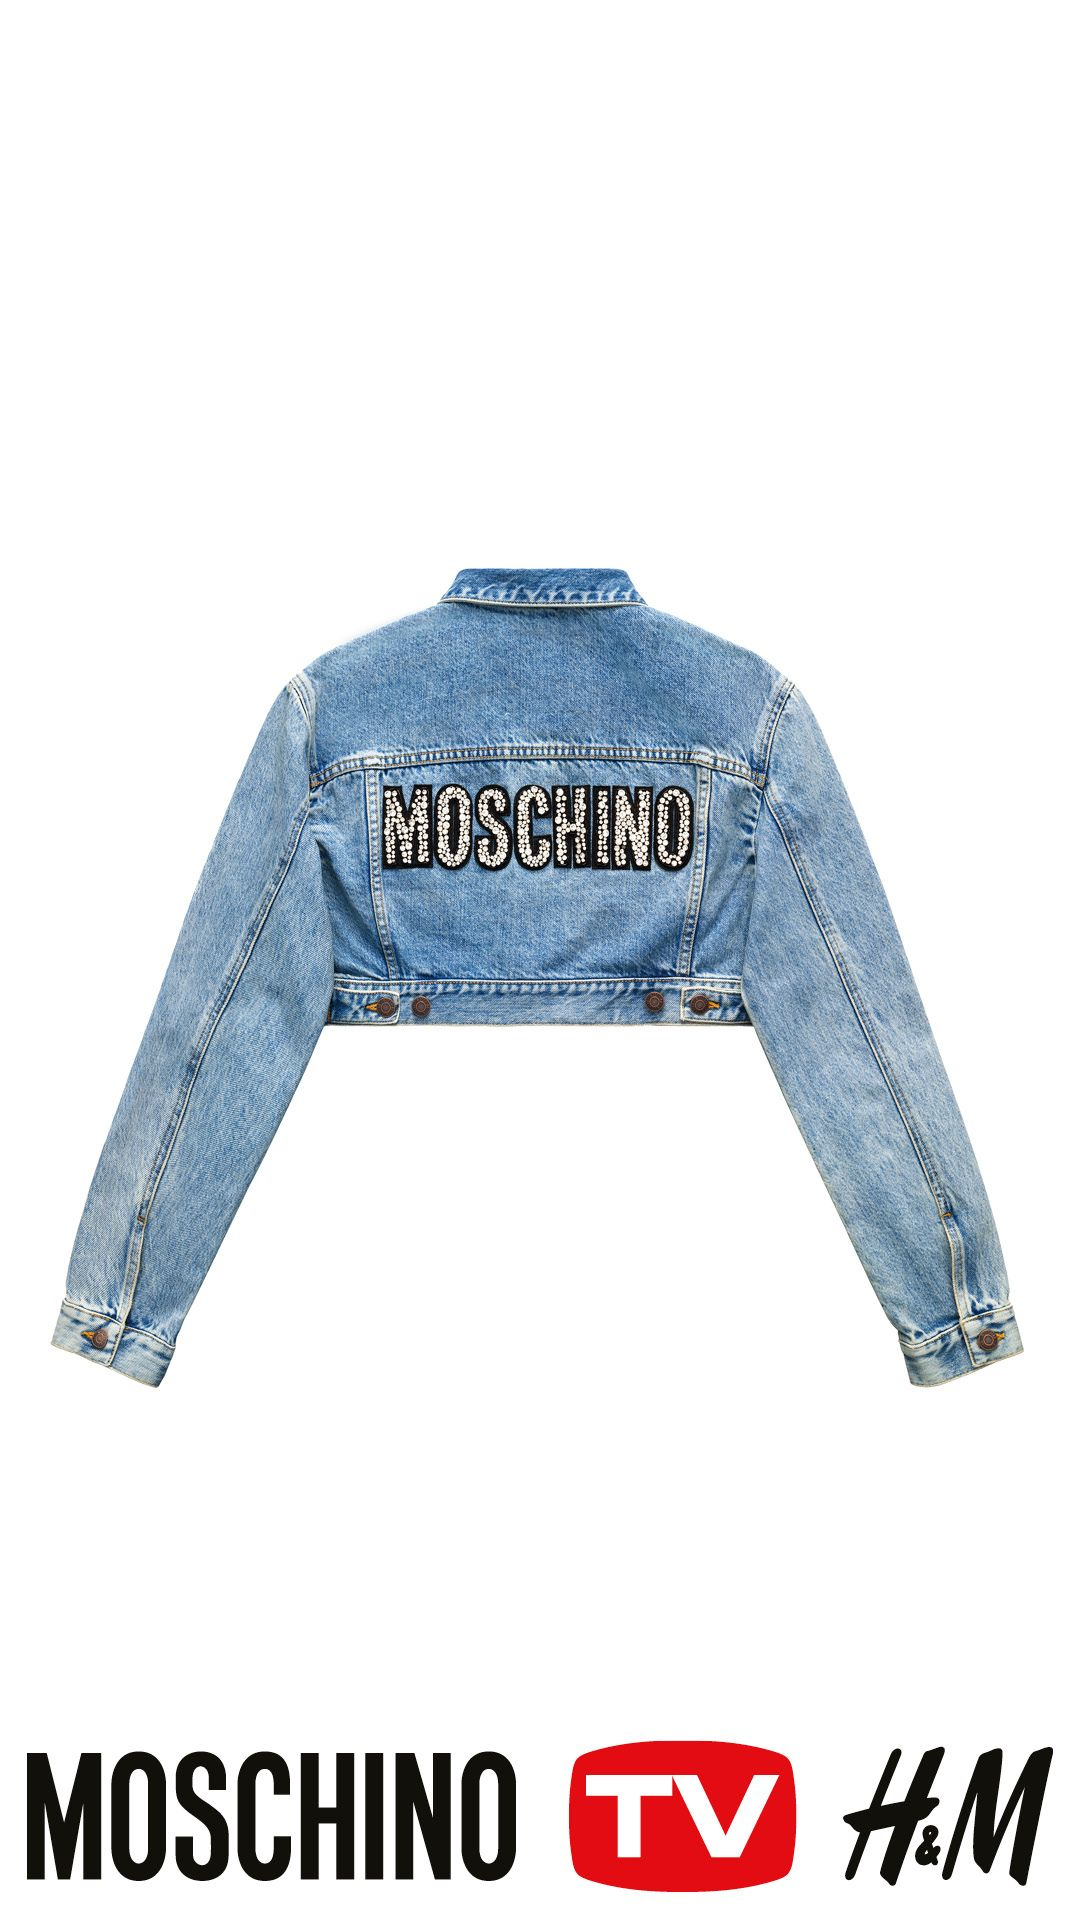 b2ed6254da MOSCHINO  tv  H M features bold streetwear-inspired clothing and  accessories for women and men. Welcome to a glamorous world of pop culture